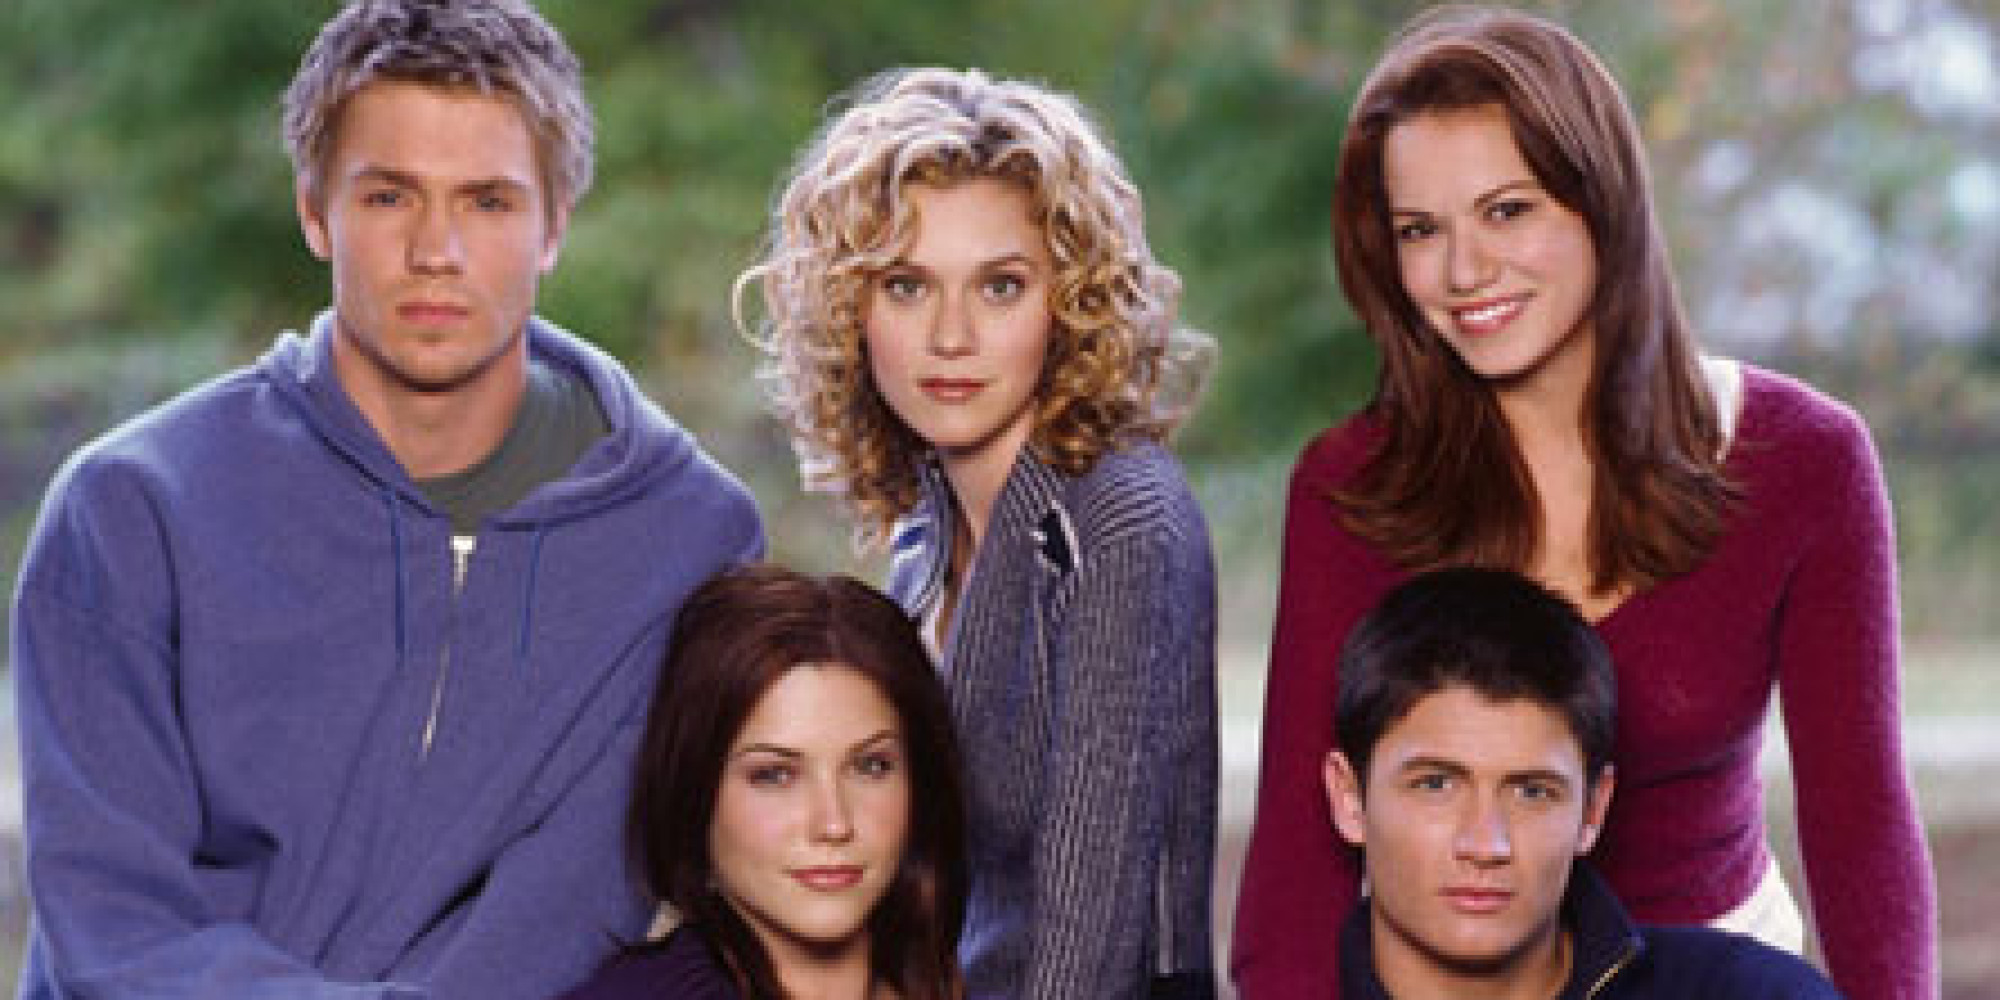 This Is What Happened To The 'One Tree Hill' Cast | HuffPost